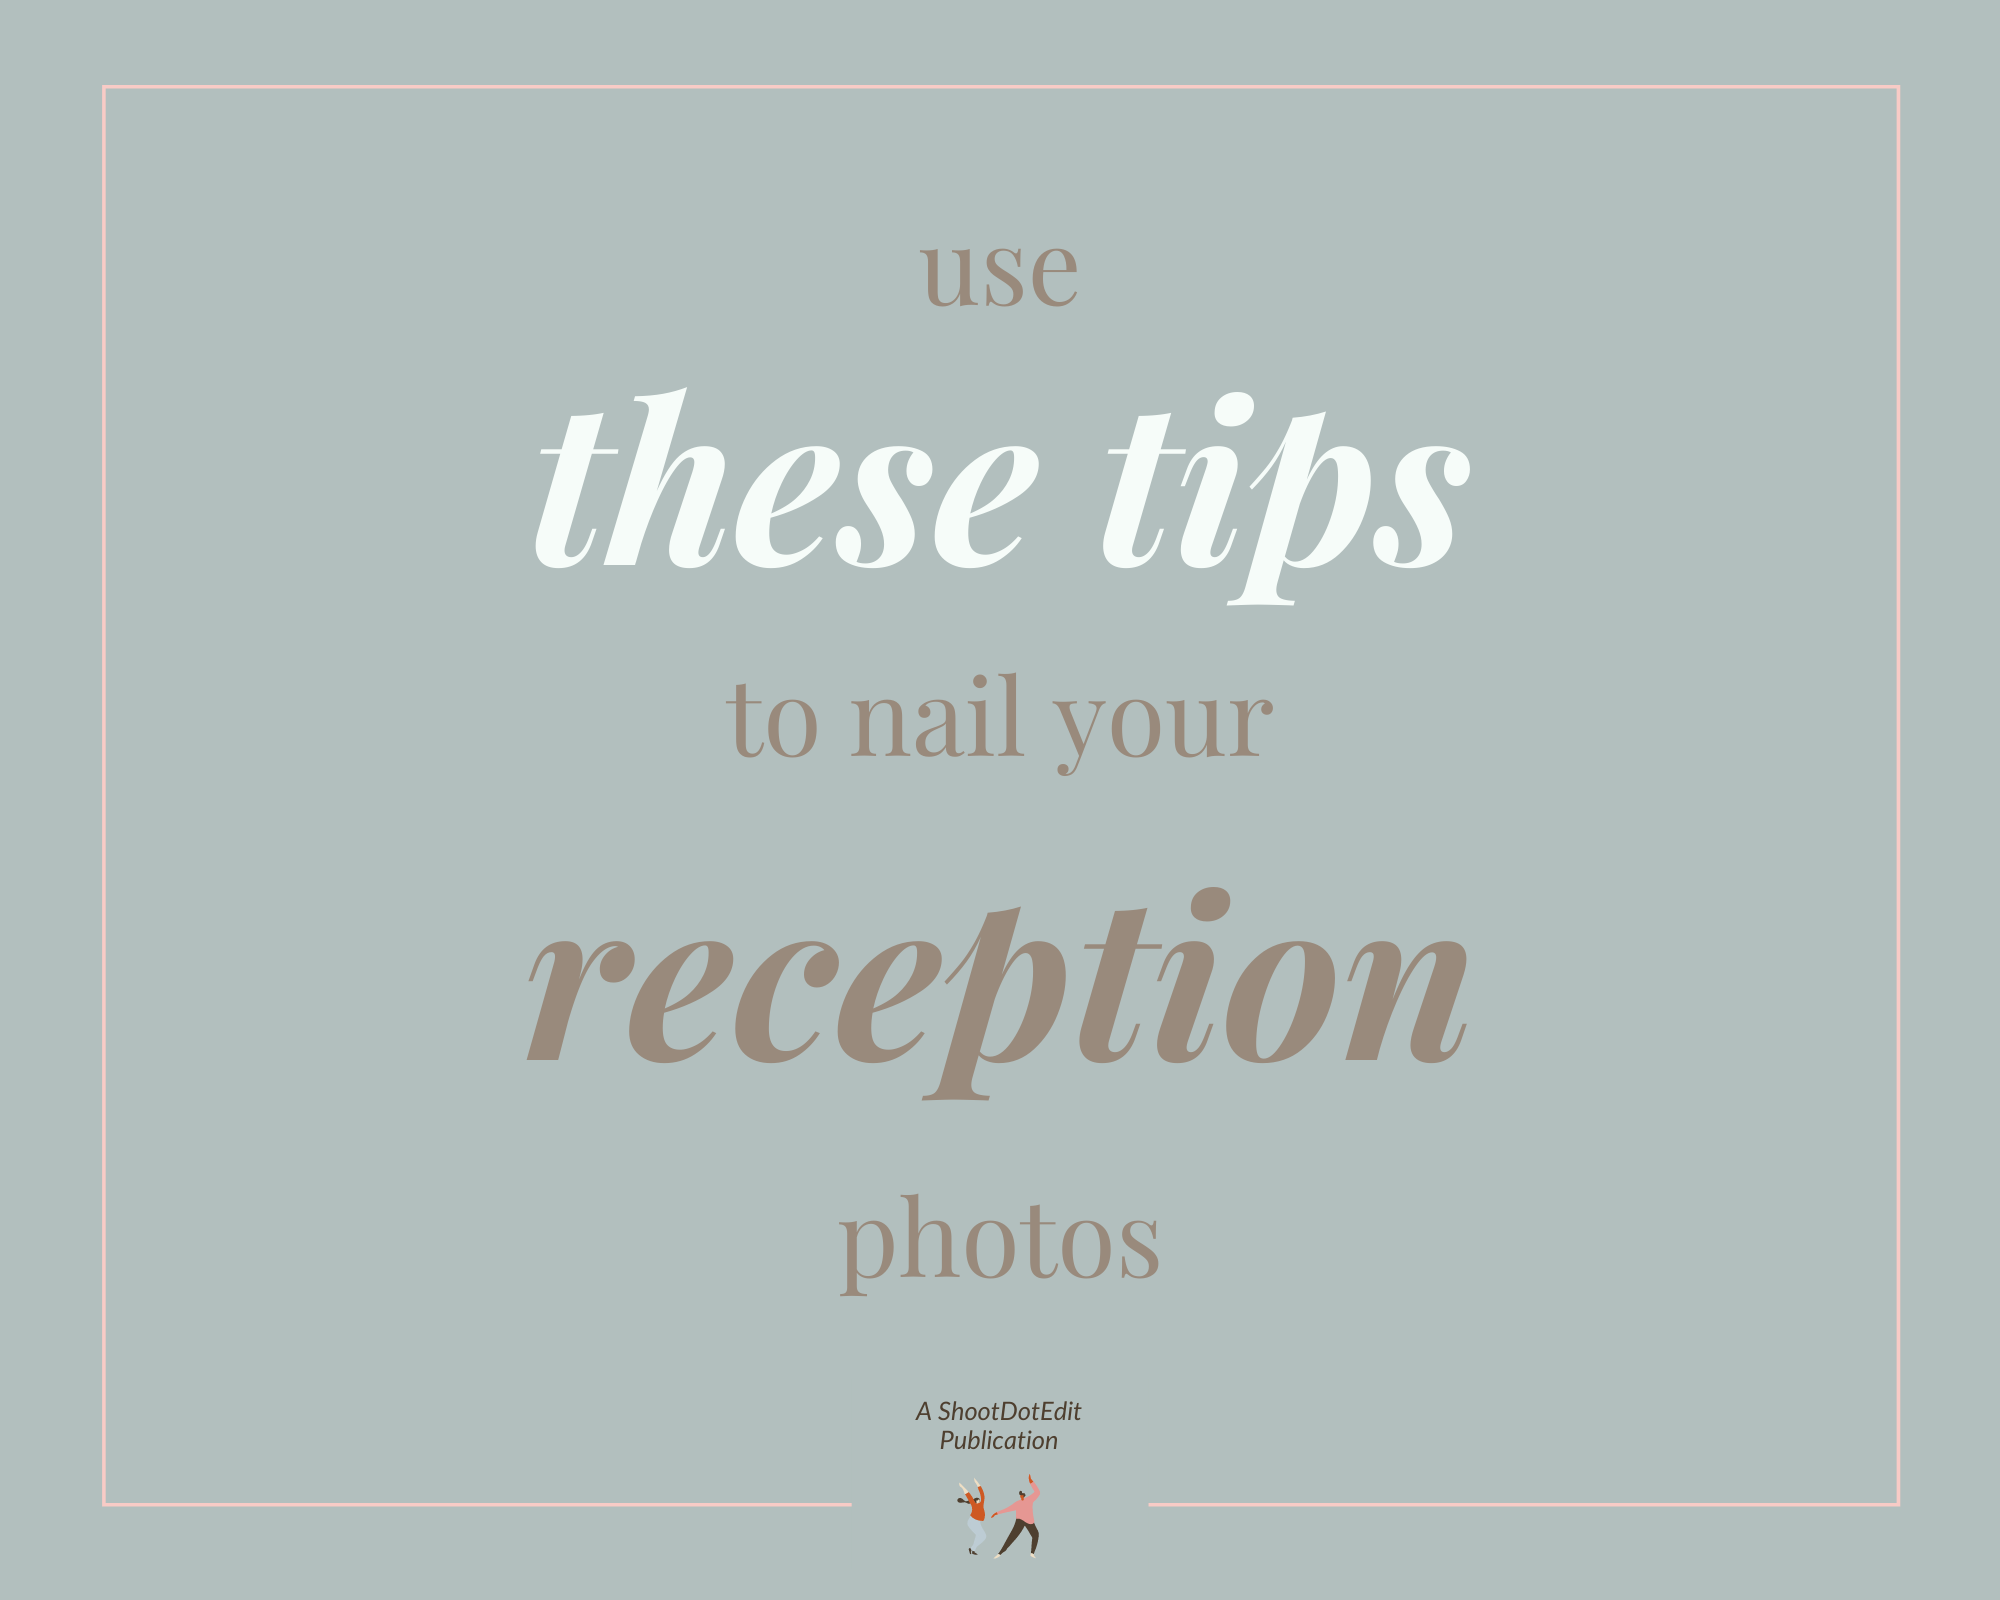 Infographic stating use these tips to nail your wedding reception photos